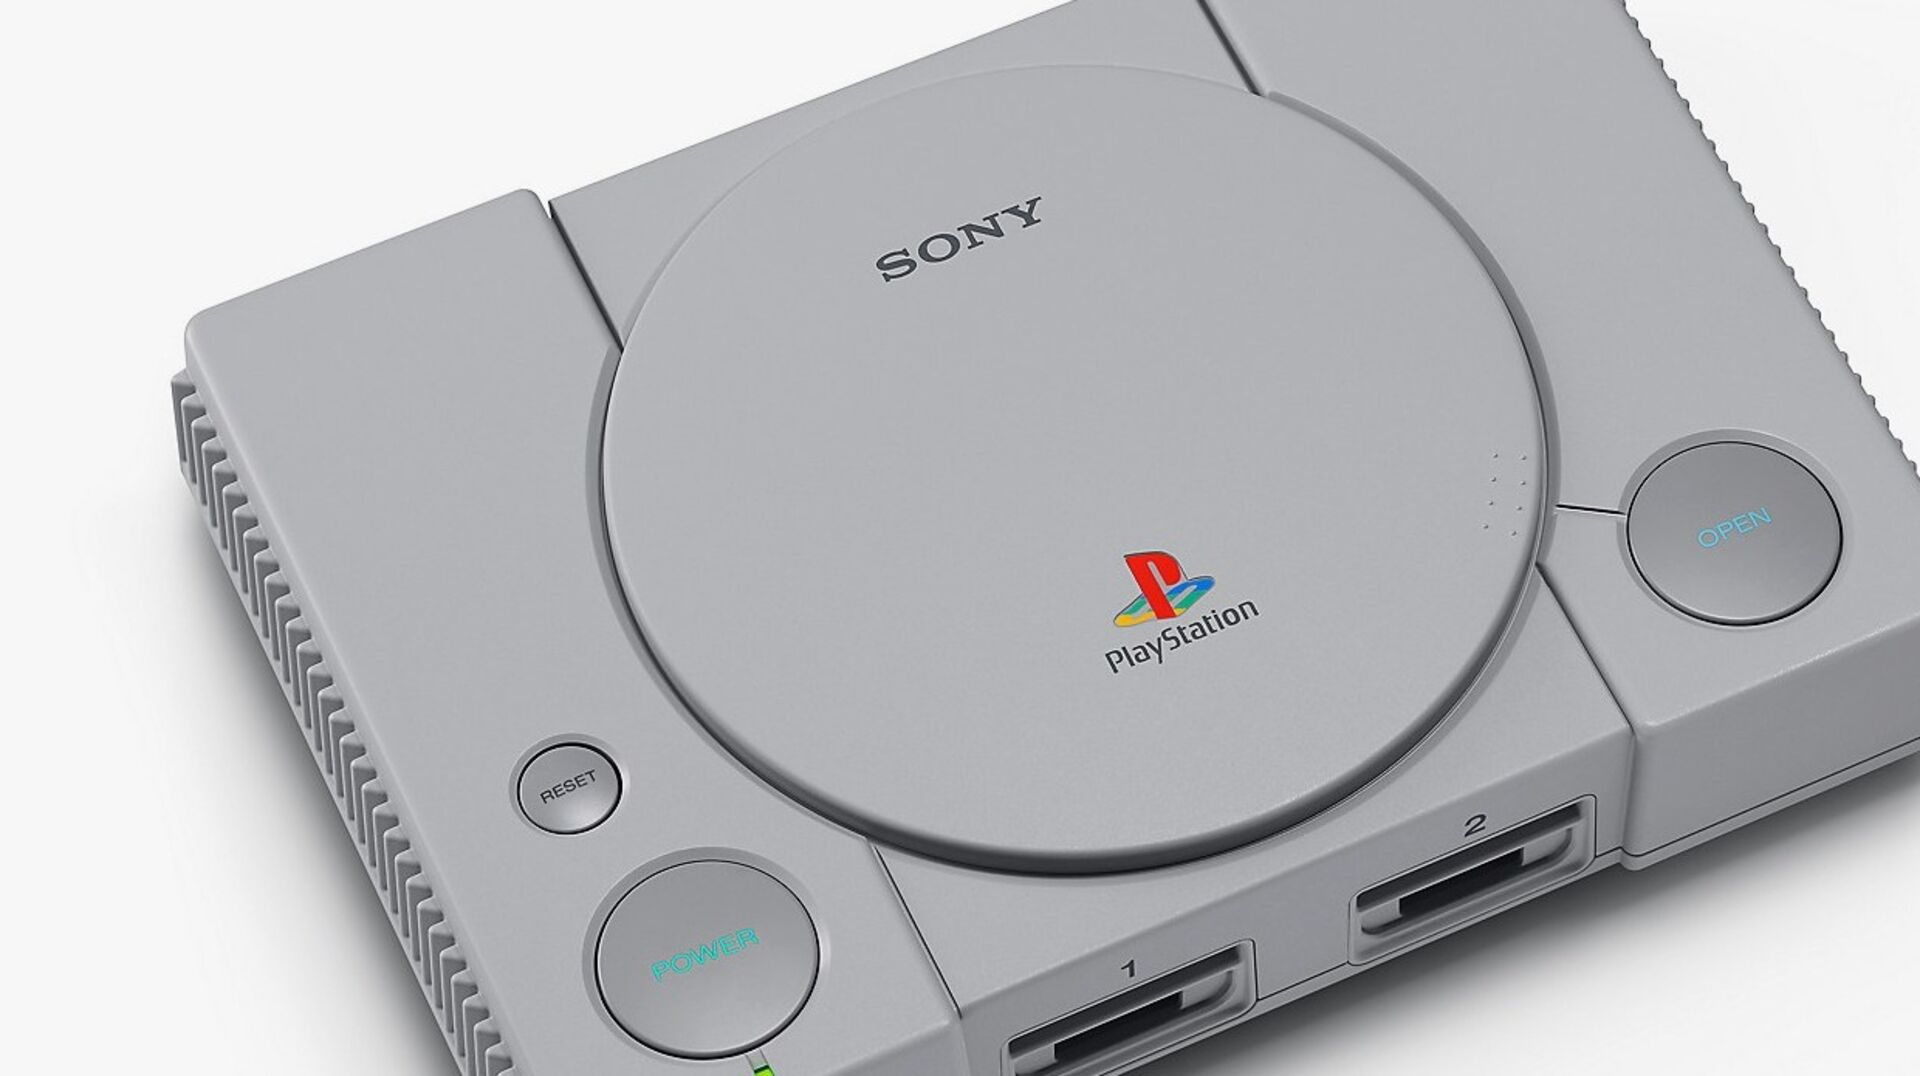 PlayStation Classic teardown: what's inside Sony's new micro